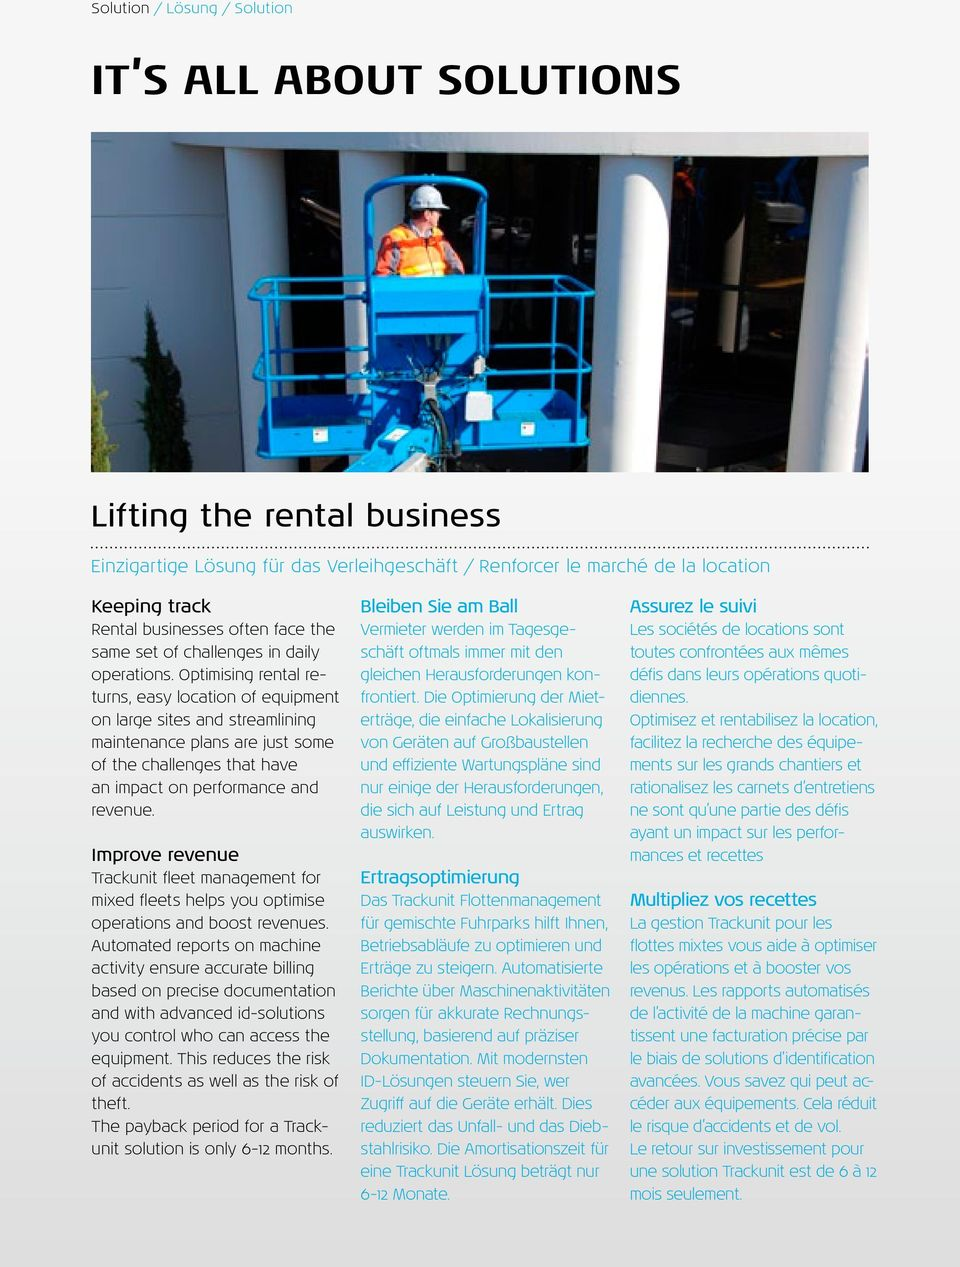 Optimising rental returns, easy location of equipment on large sites and streamlining maintenance plans are just some of the challenges that have an impact on performance and revenue.